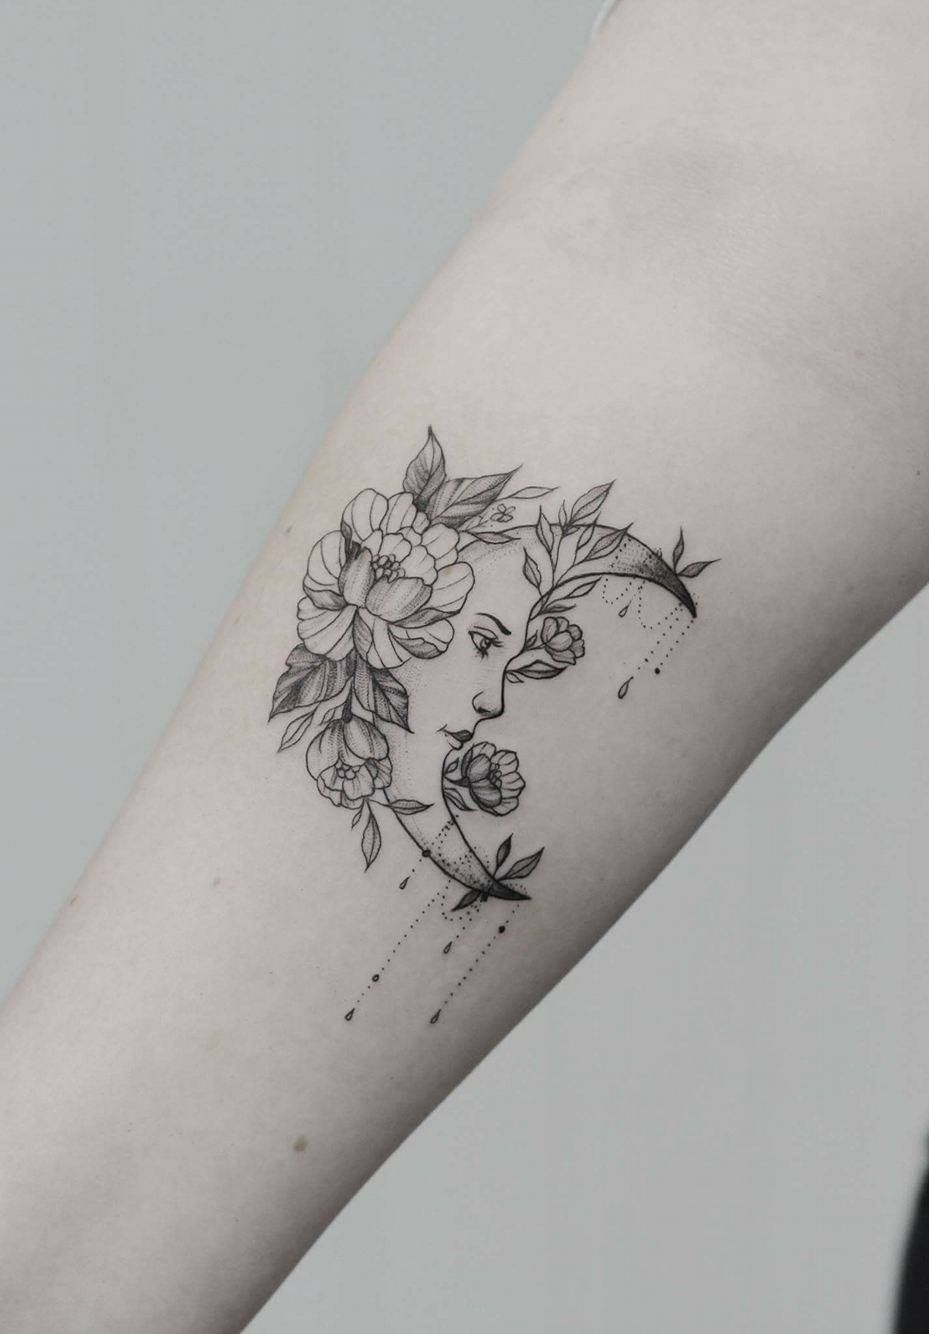 Pin by anto on tattoo pinterest tattoo tatting and piercings